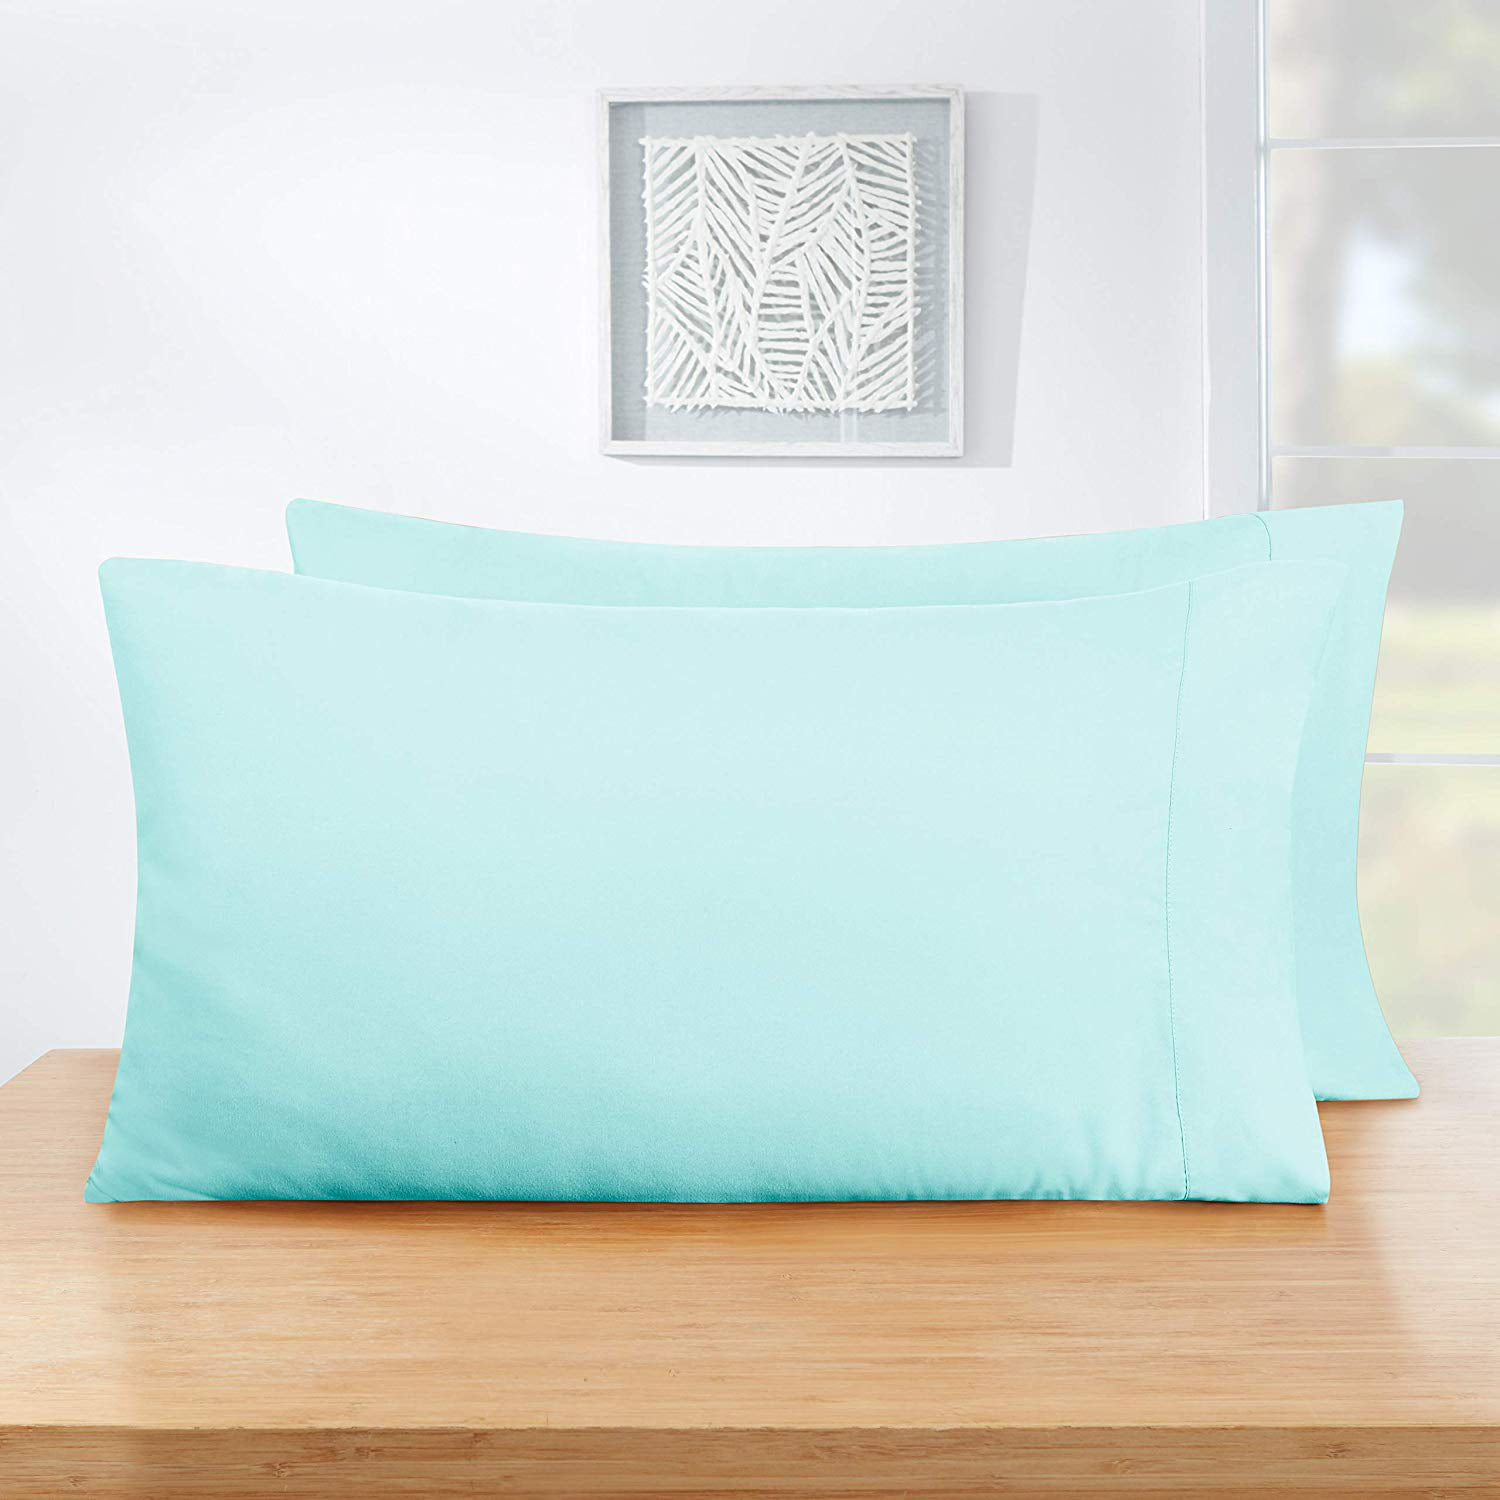 Hypoallergenic Cool /& Wrinkle Free Cosy House Collection Pillowcases King Size Premium Super Soft Hotel Quality Pillow Protector Cover Baby Blue Luxury Pillow Case Set of 2